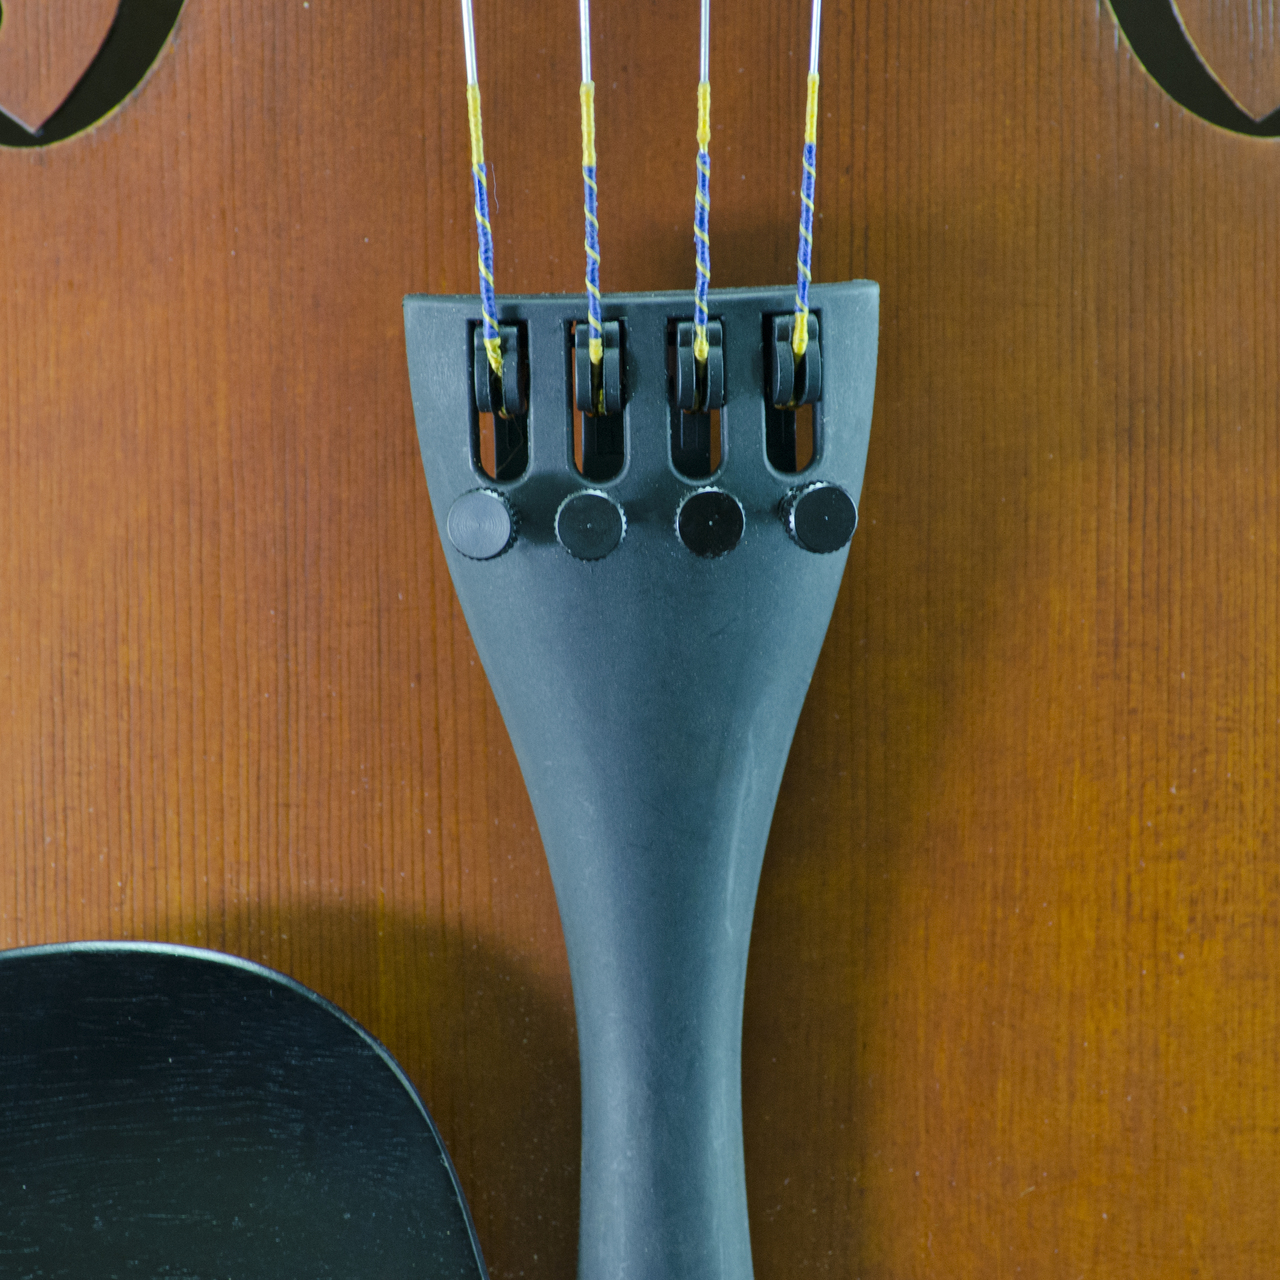 D'Addario Helicore Viola String Set in action